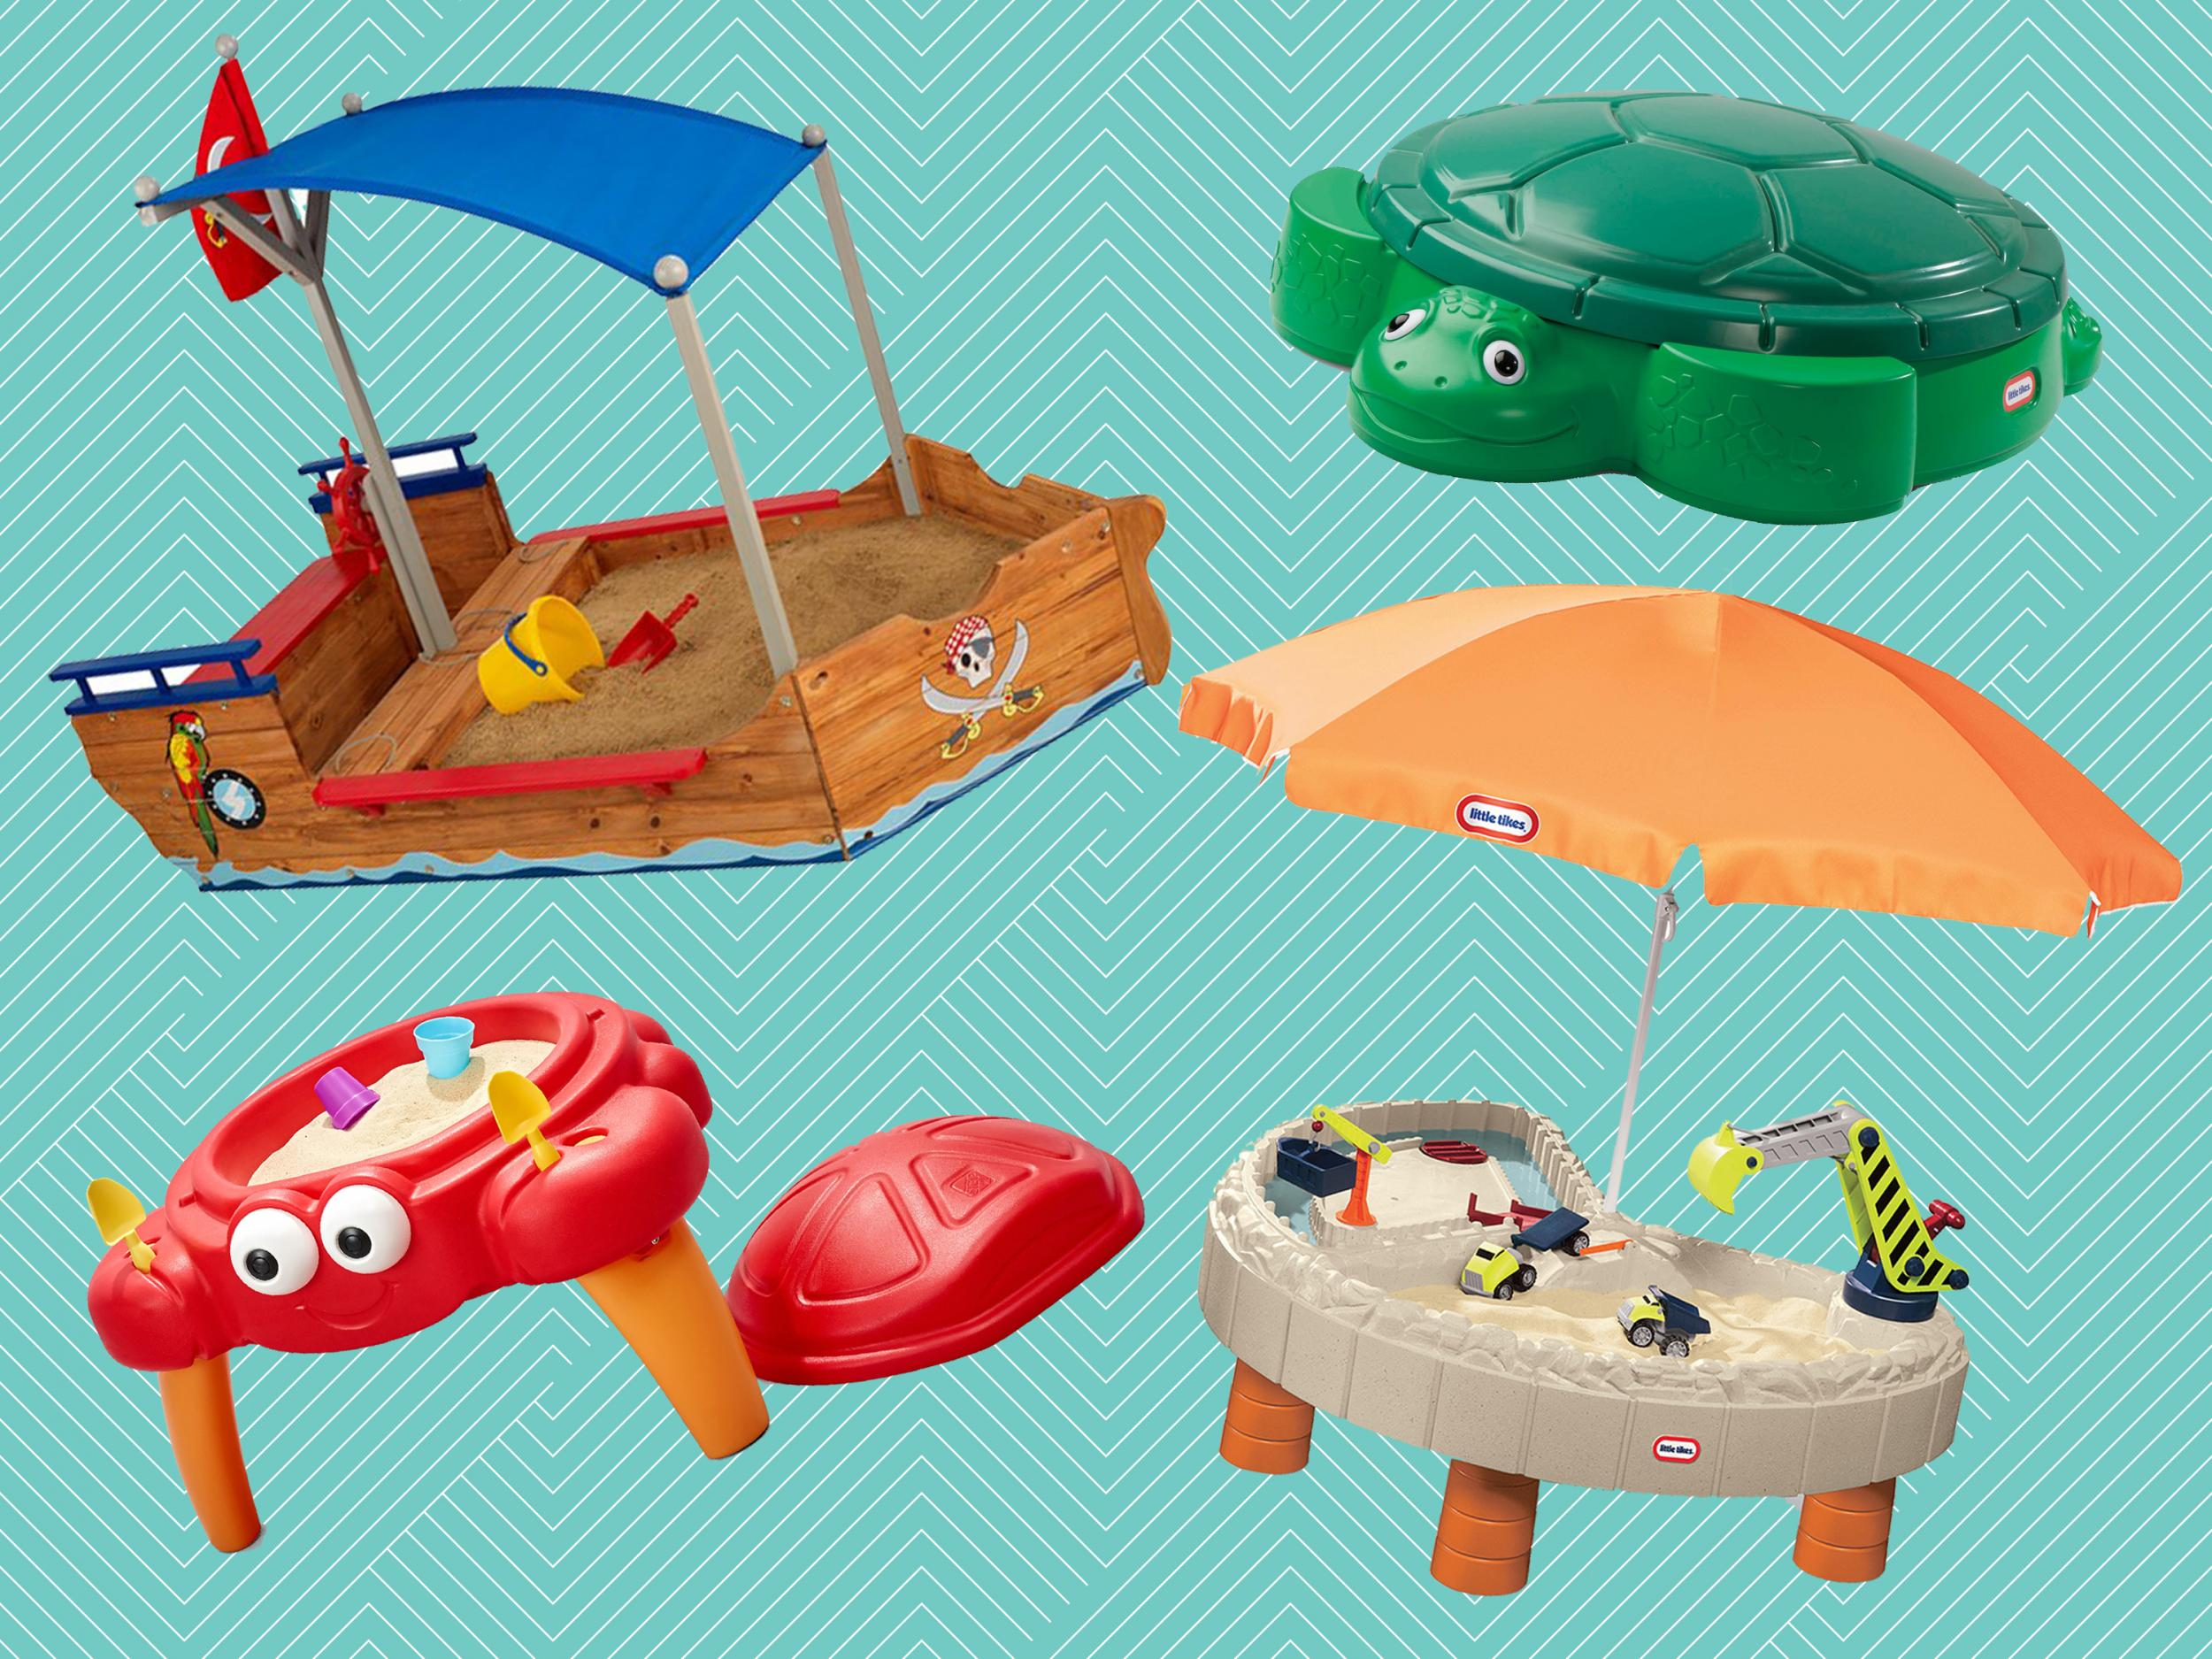 Pools & Water Fun Trustful 6 Sets Childrens Beach Toy Car Suit Baby Play With Sand Dug Tool Attractive Appearance